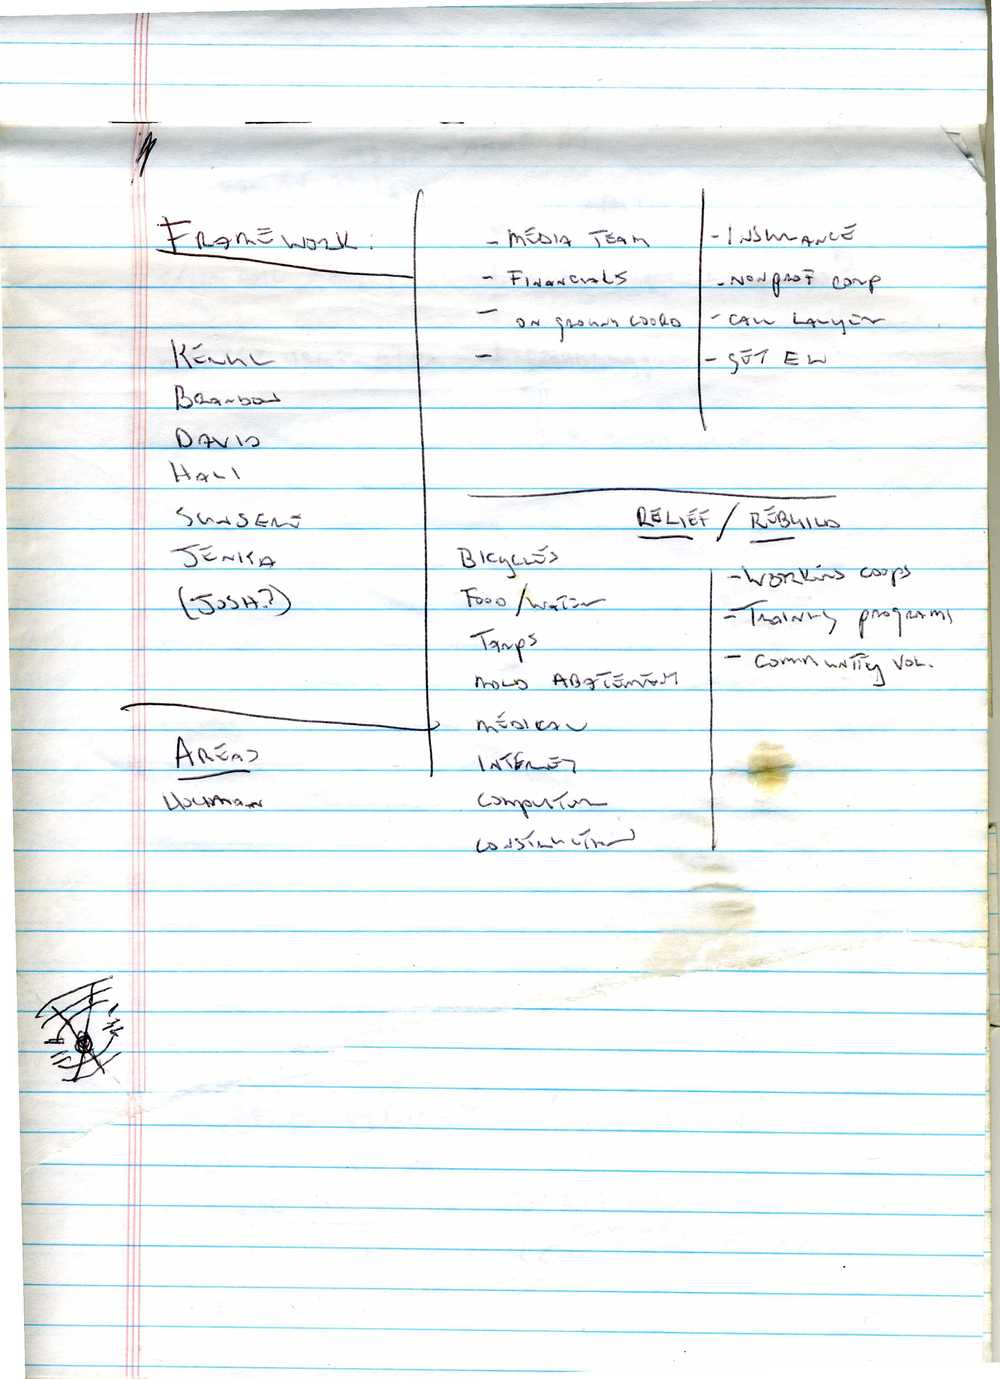 CG framework DRAFT notes_sept 05.jpg